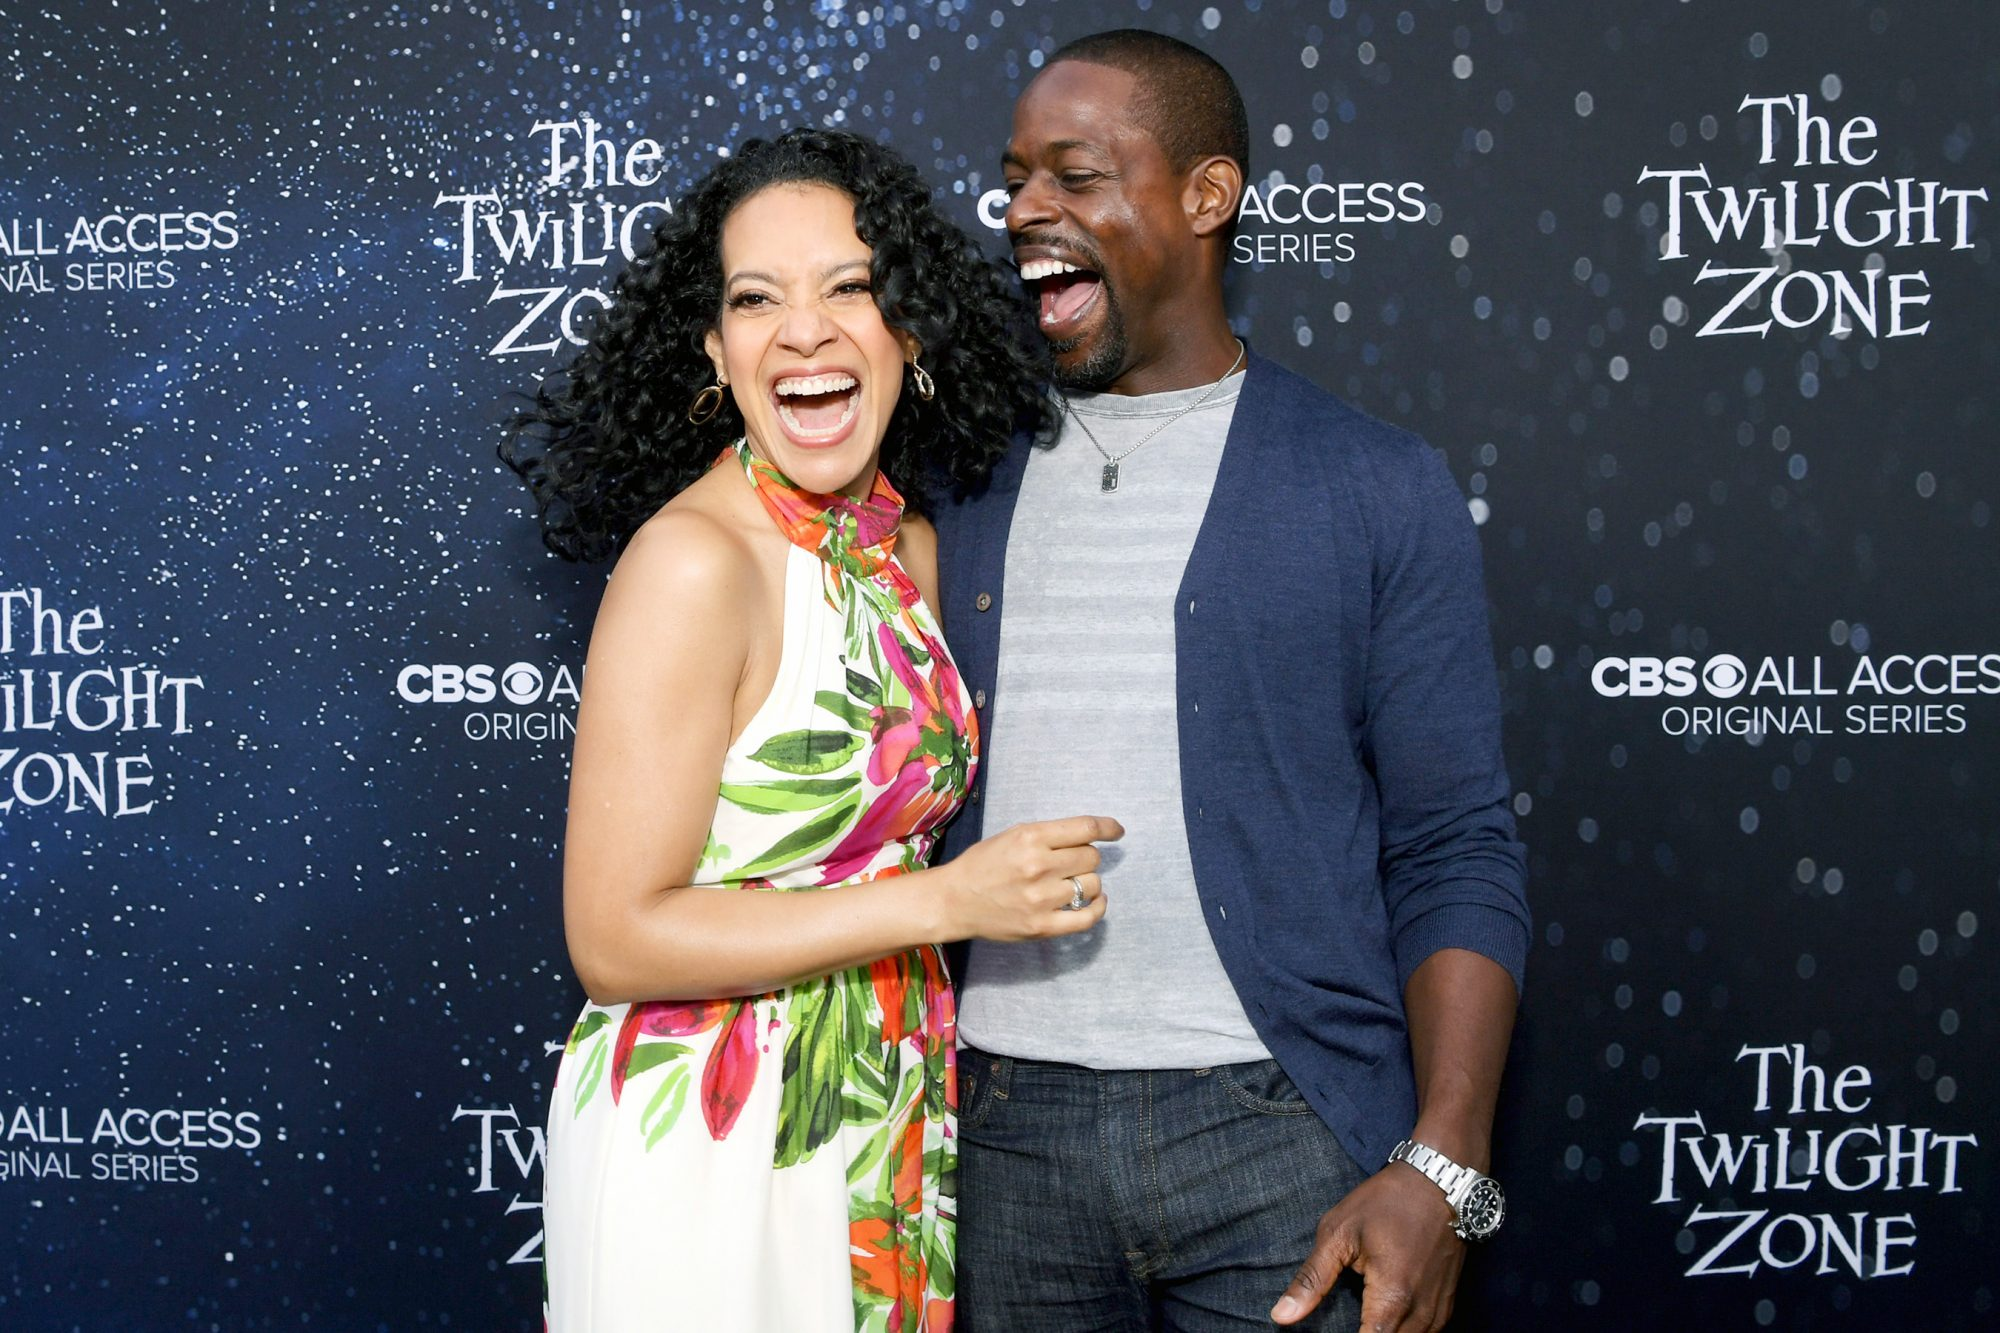 """CBS All Access New Series """"The Twilight Zone"""" Premiere - Red Carpet"""